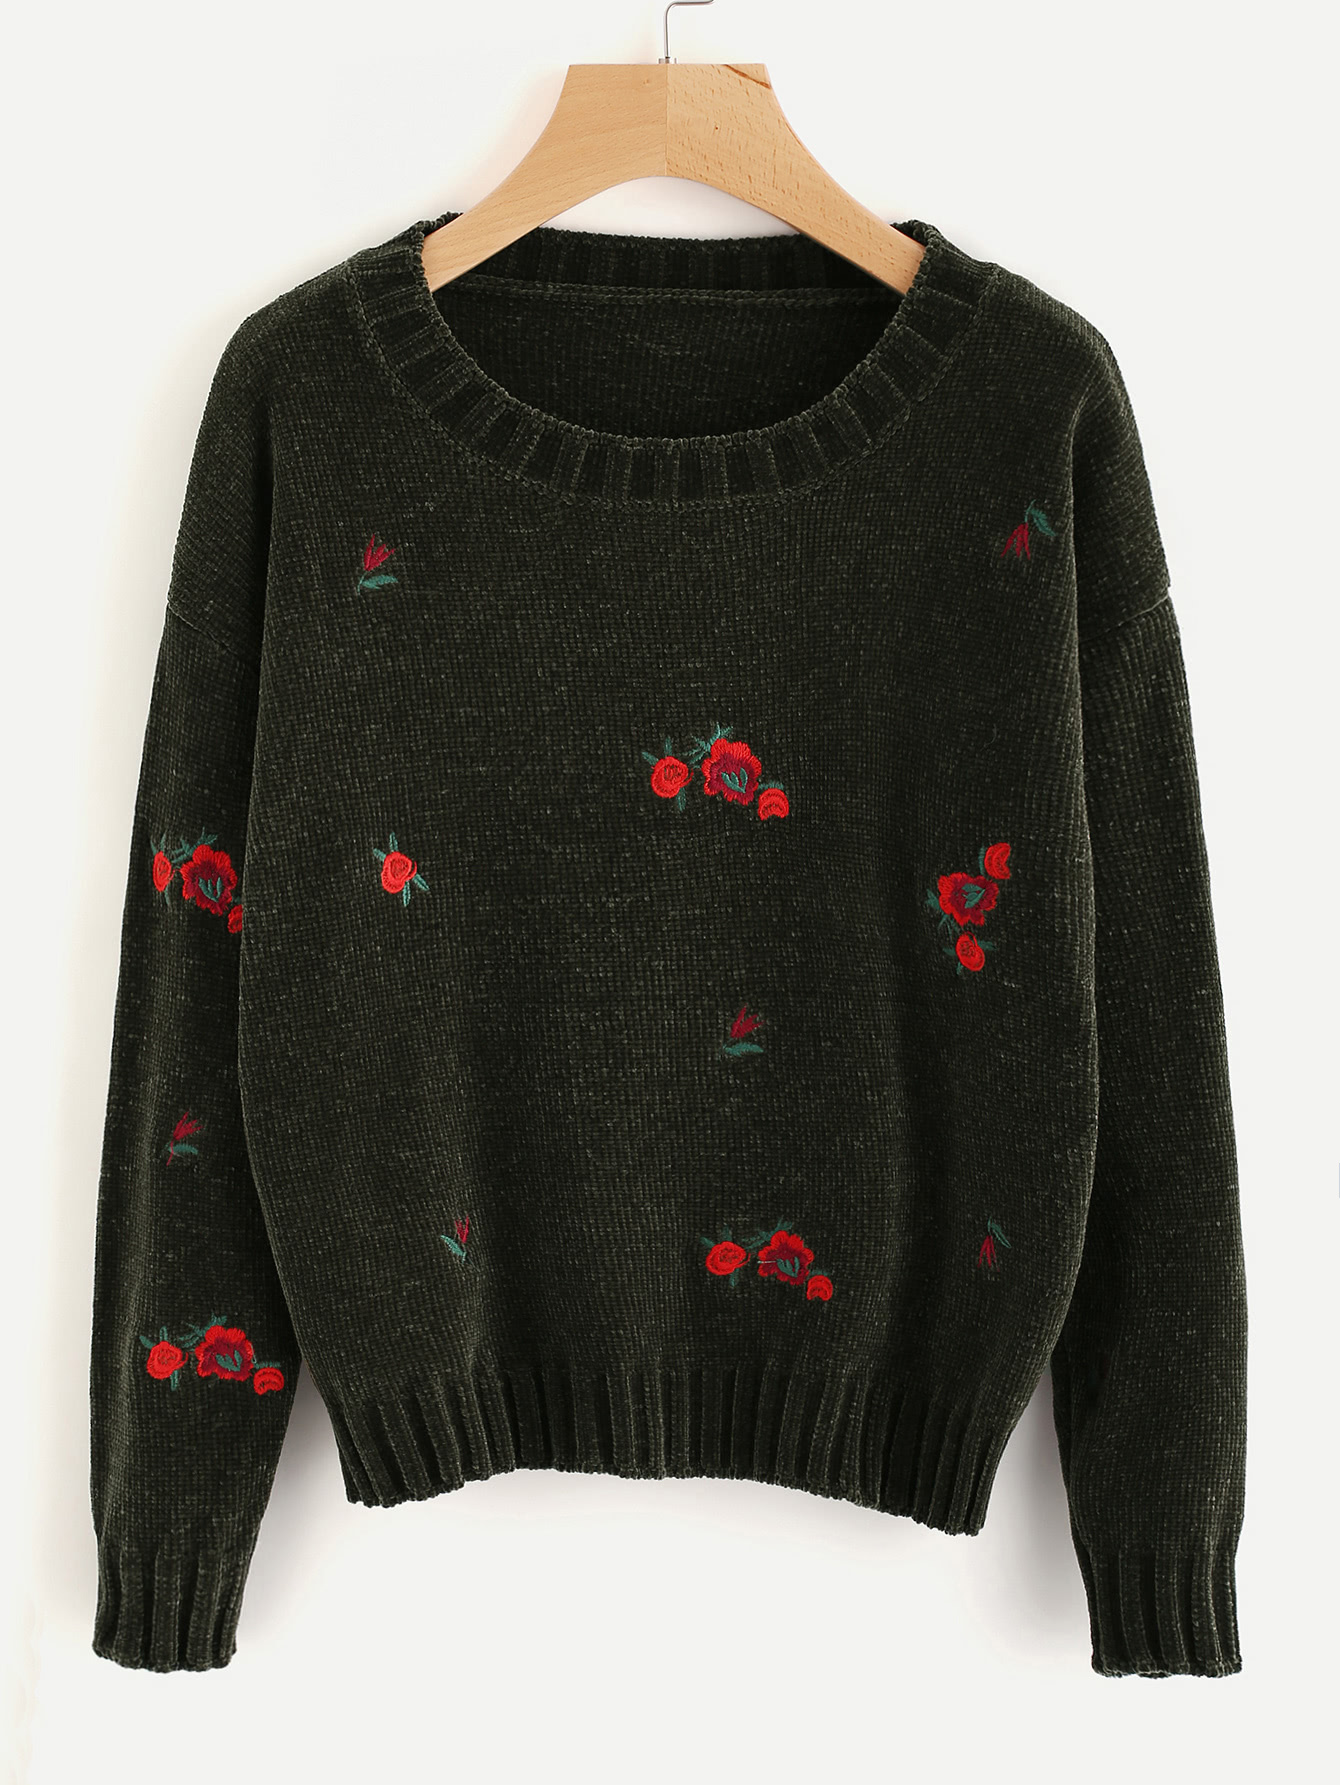 Ribbed Trim Flower Embroidered Jumper sweater170728454